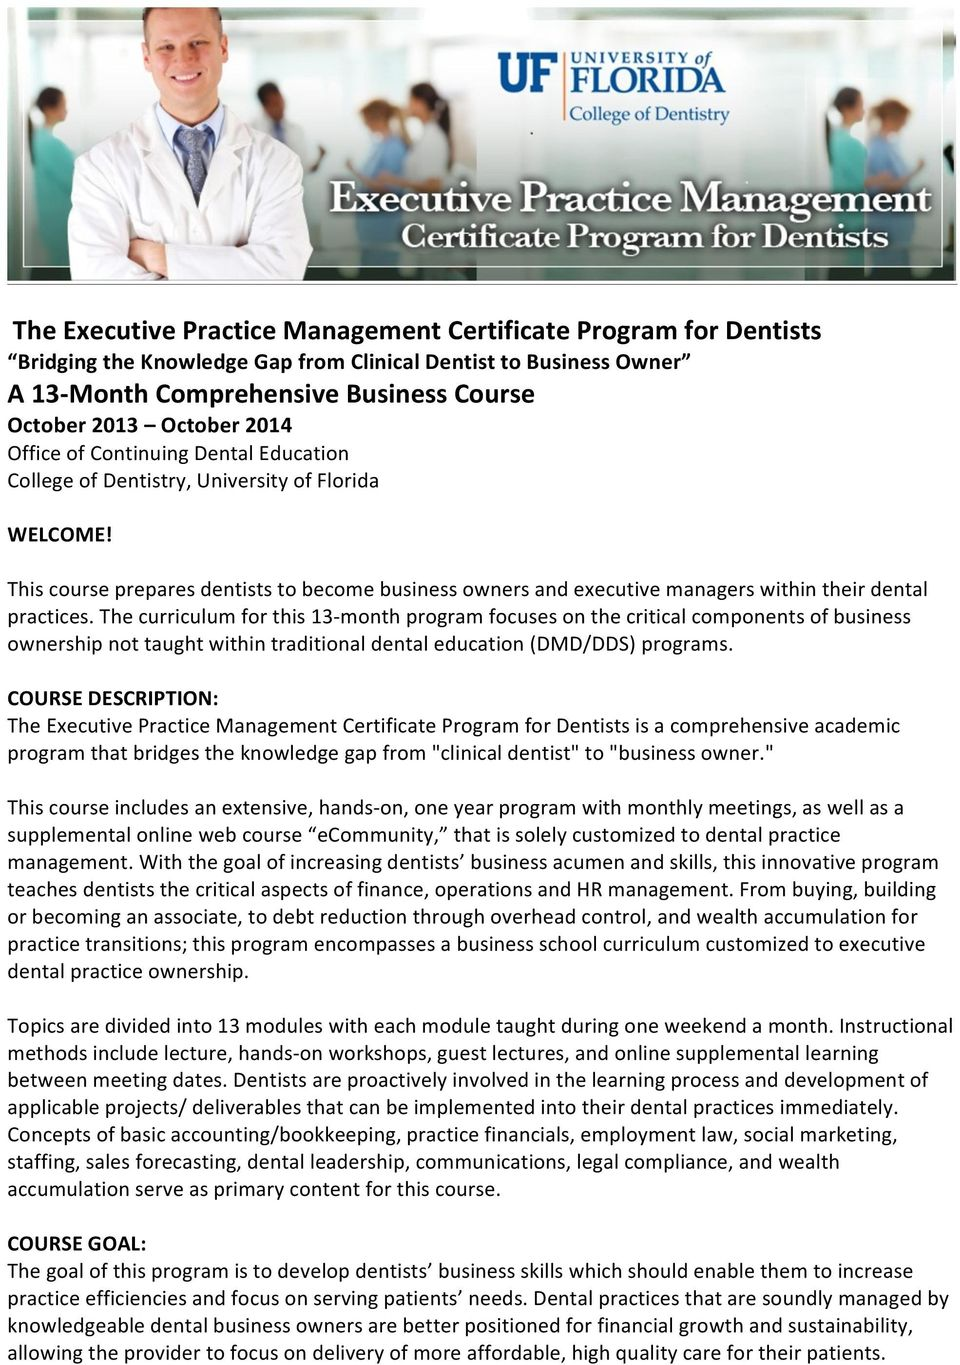 The Executive Practice Management Certificate Program For Dentists